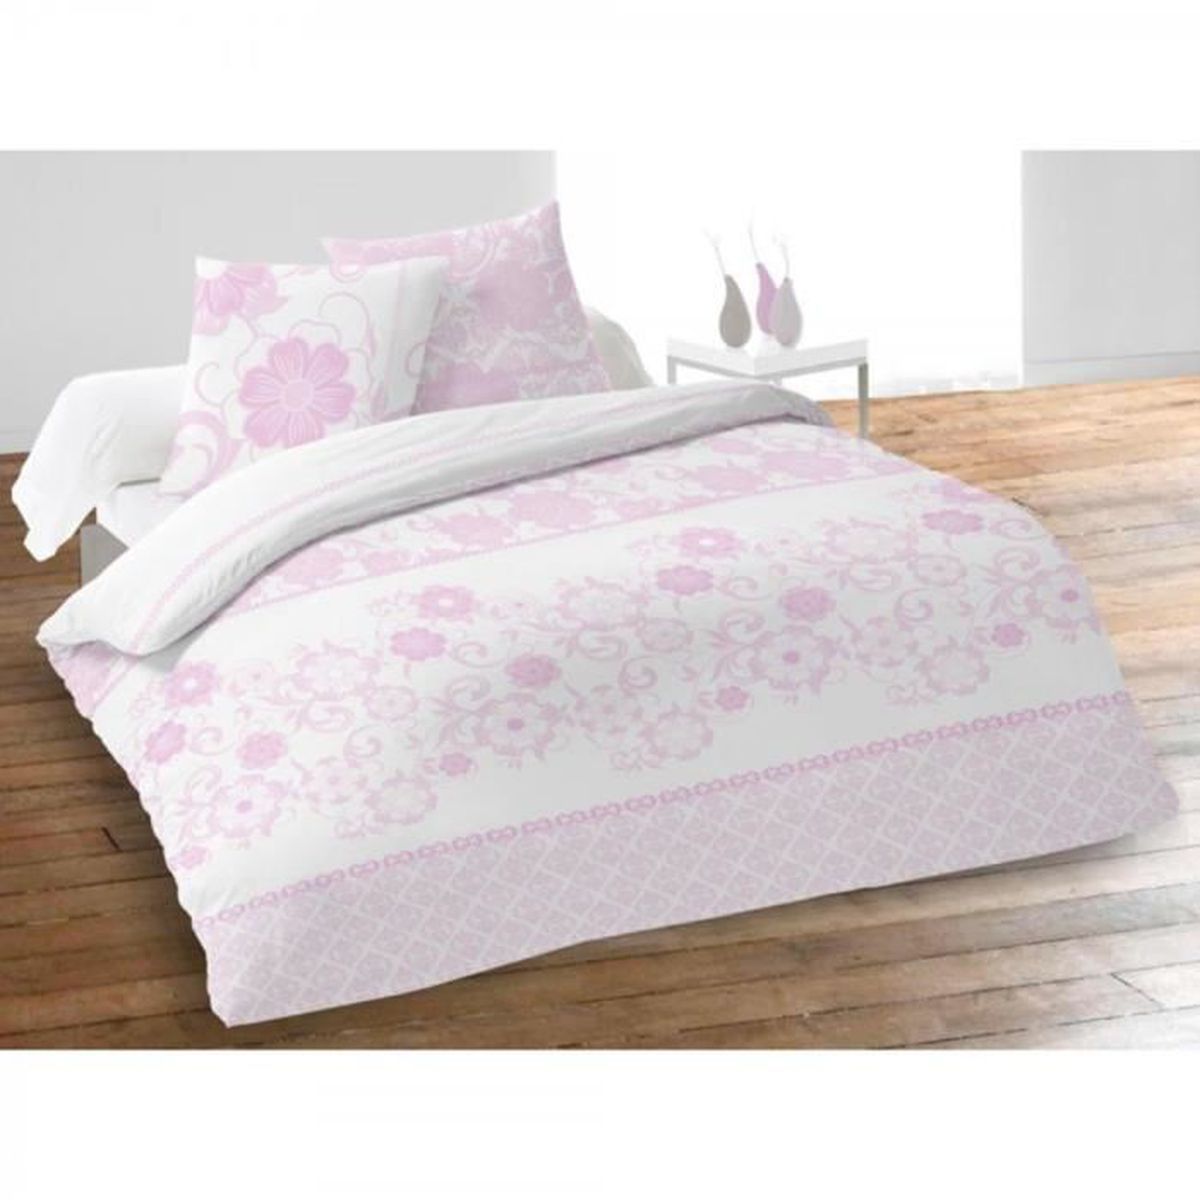 parure de lit fleur rose achat vente pas cher. Black Bedroom Furniture Sets. Home Design Ideas